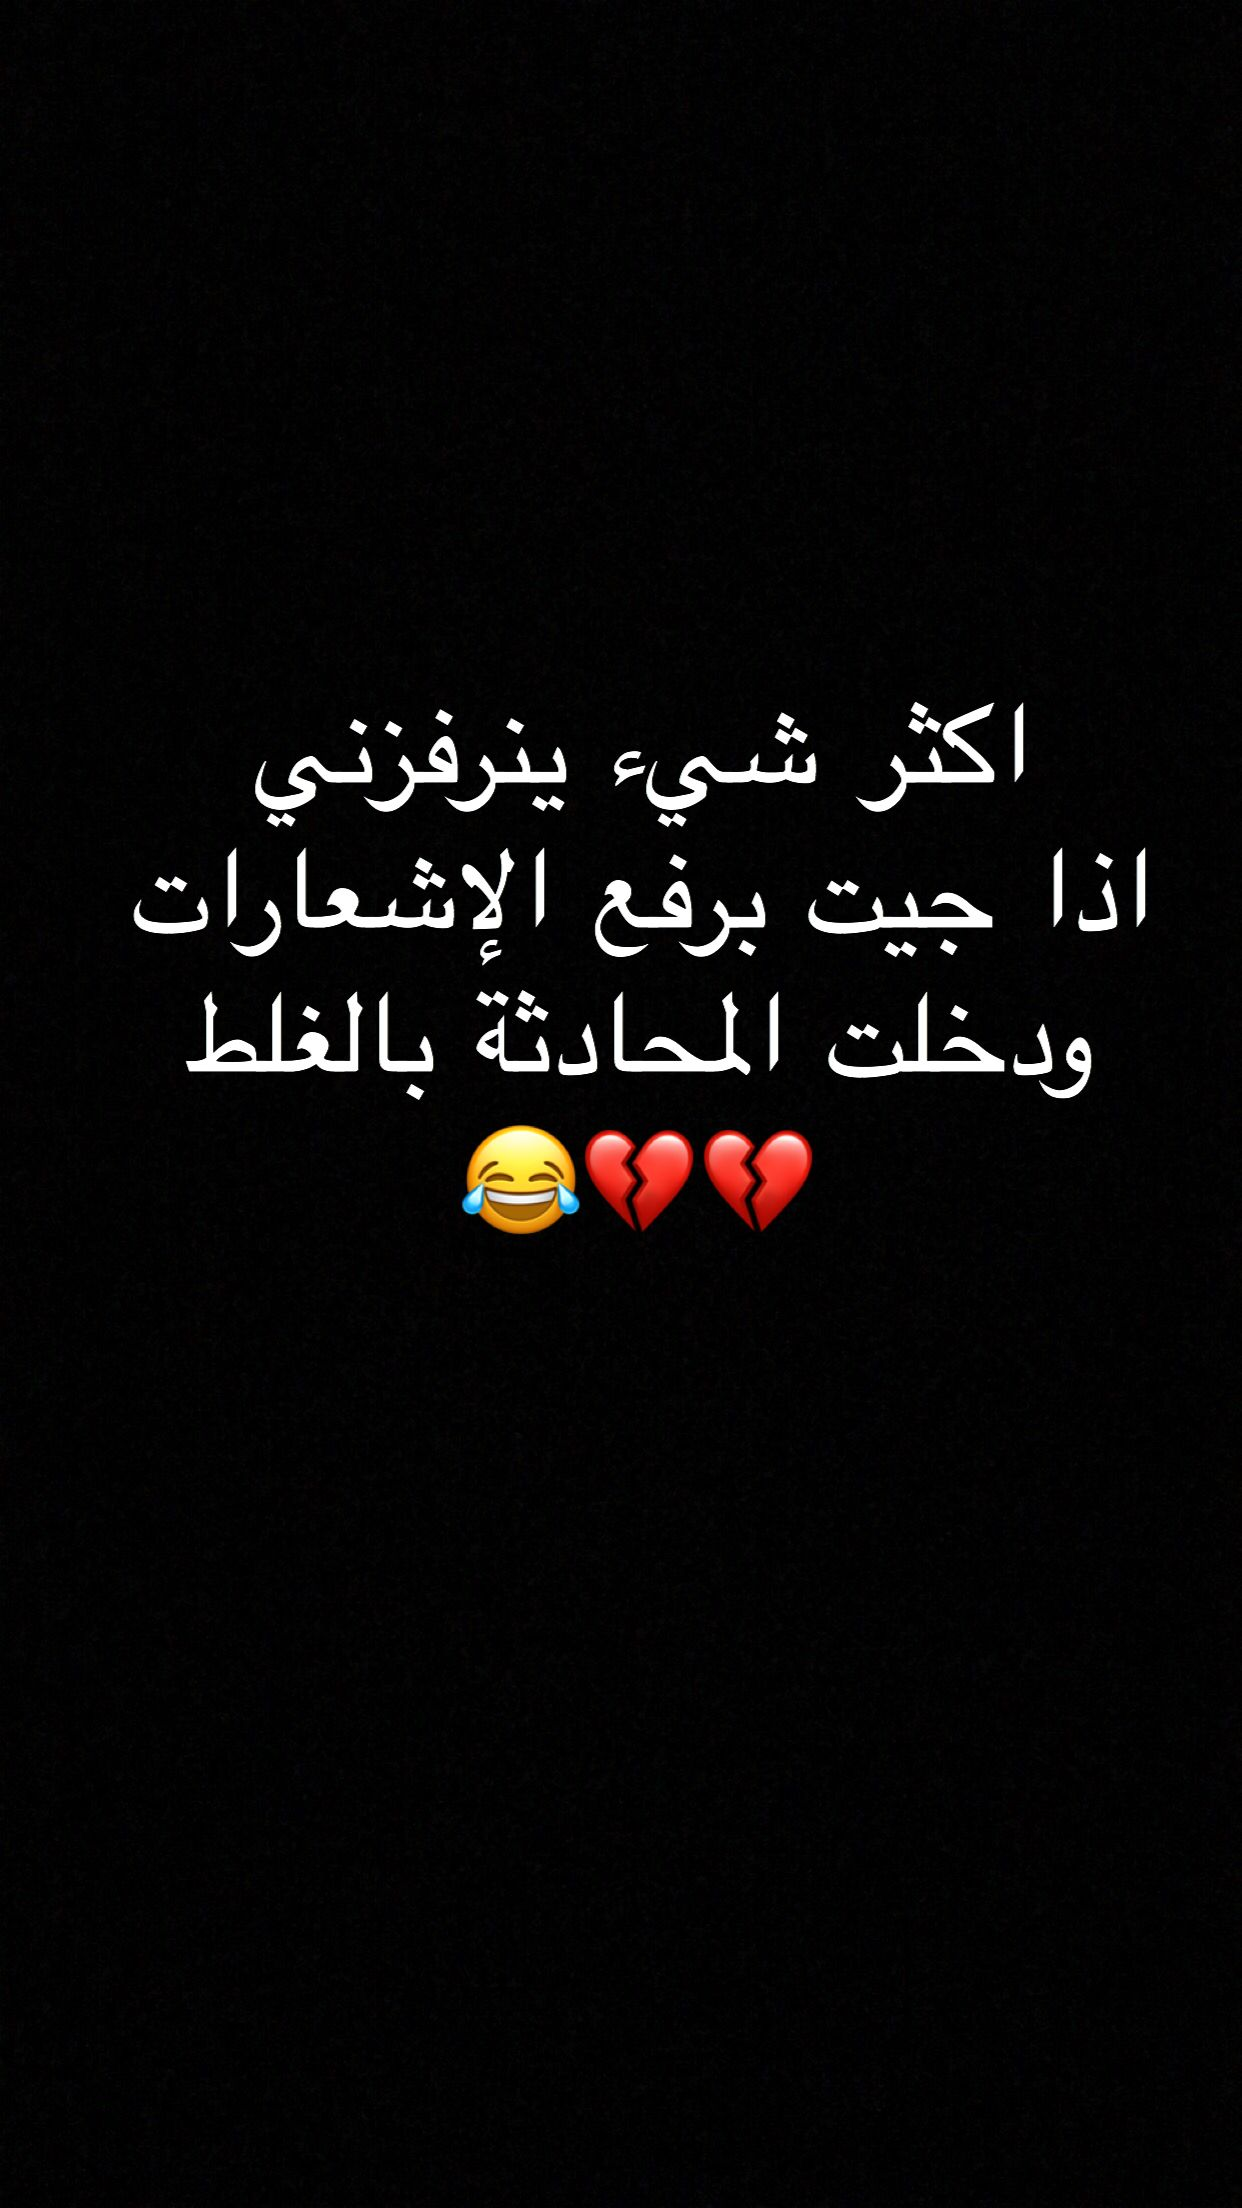 Pin By Reem Designer On استهبال وضحك Funny Study Quotes Funny Arabic Quotes Funny Words